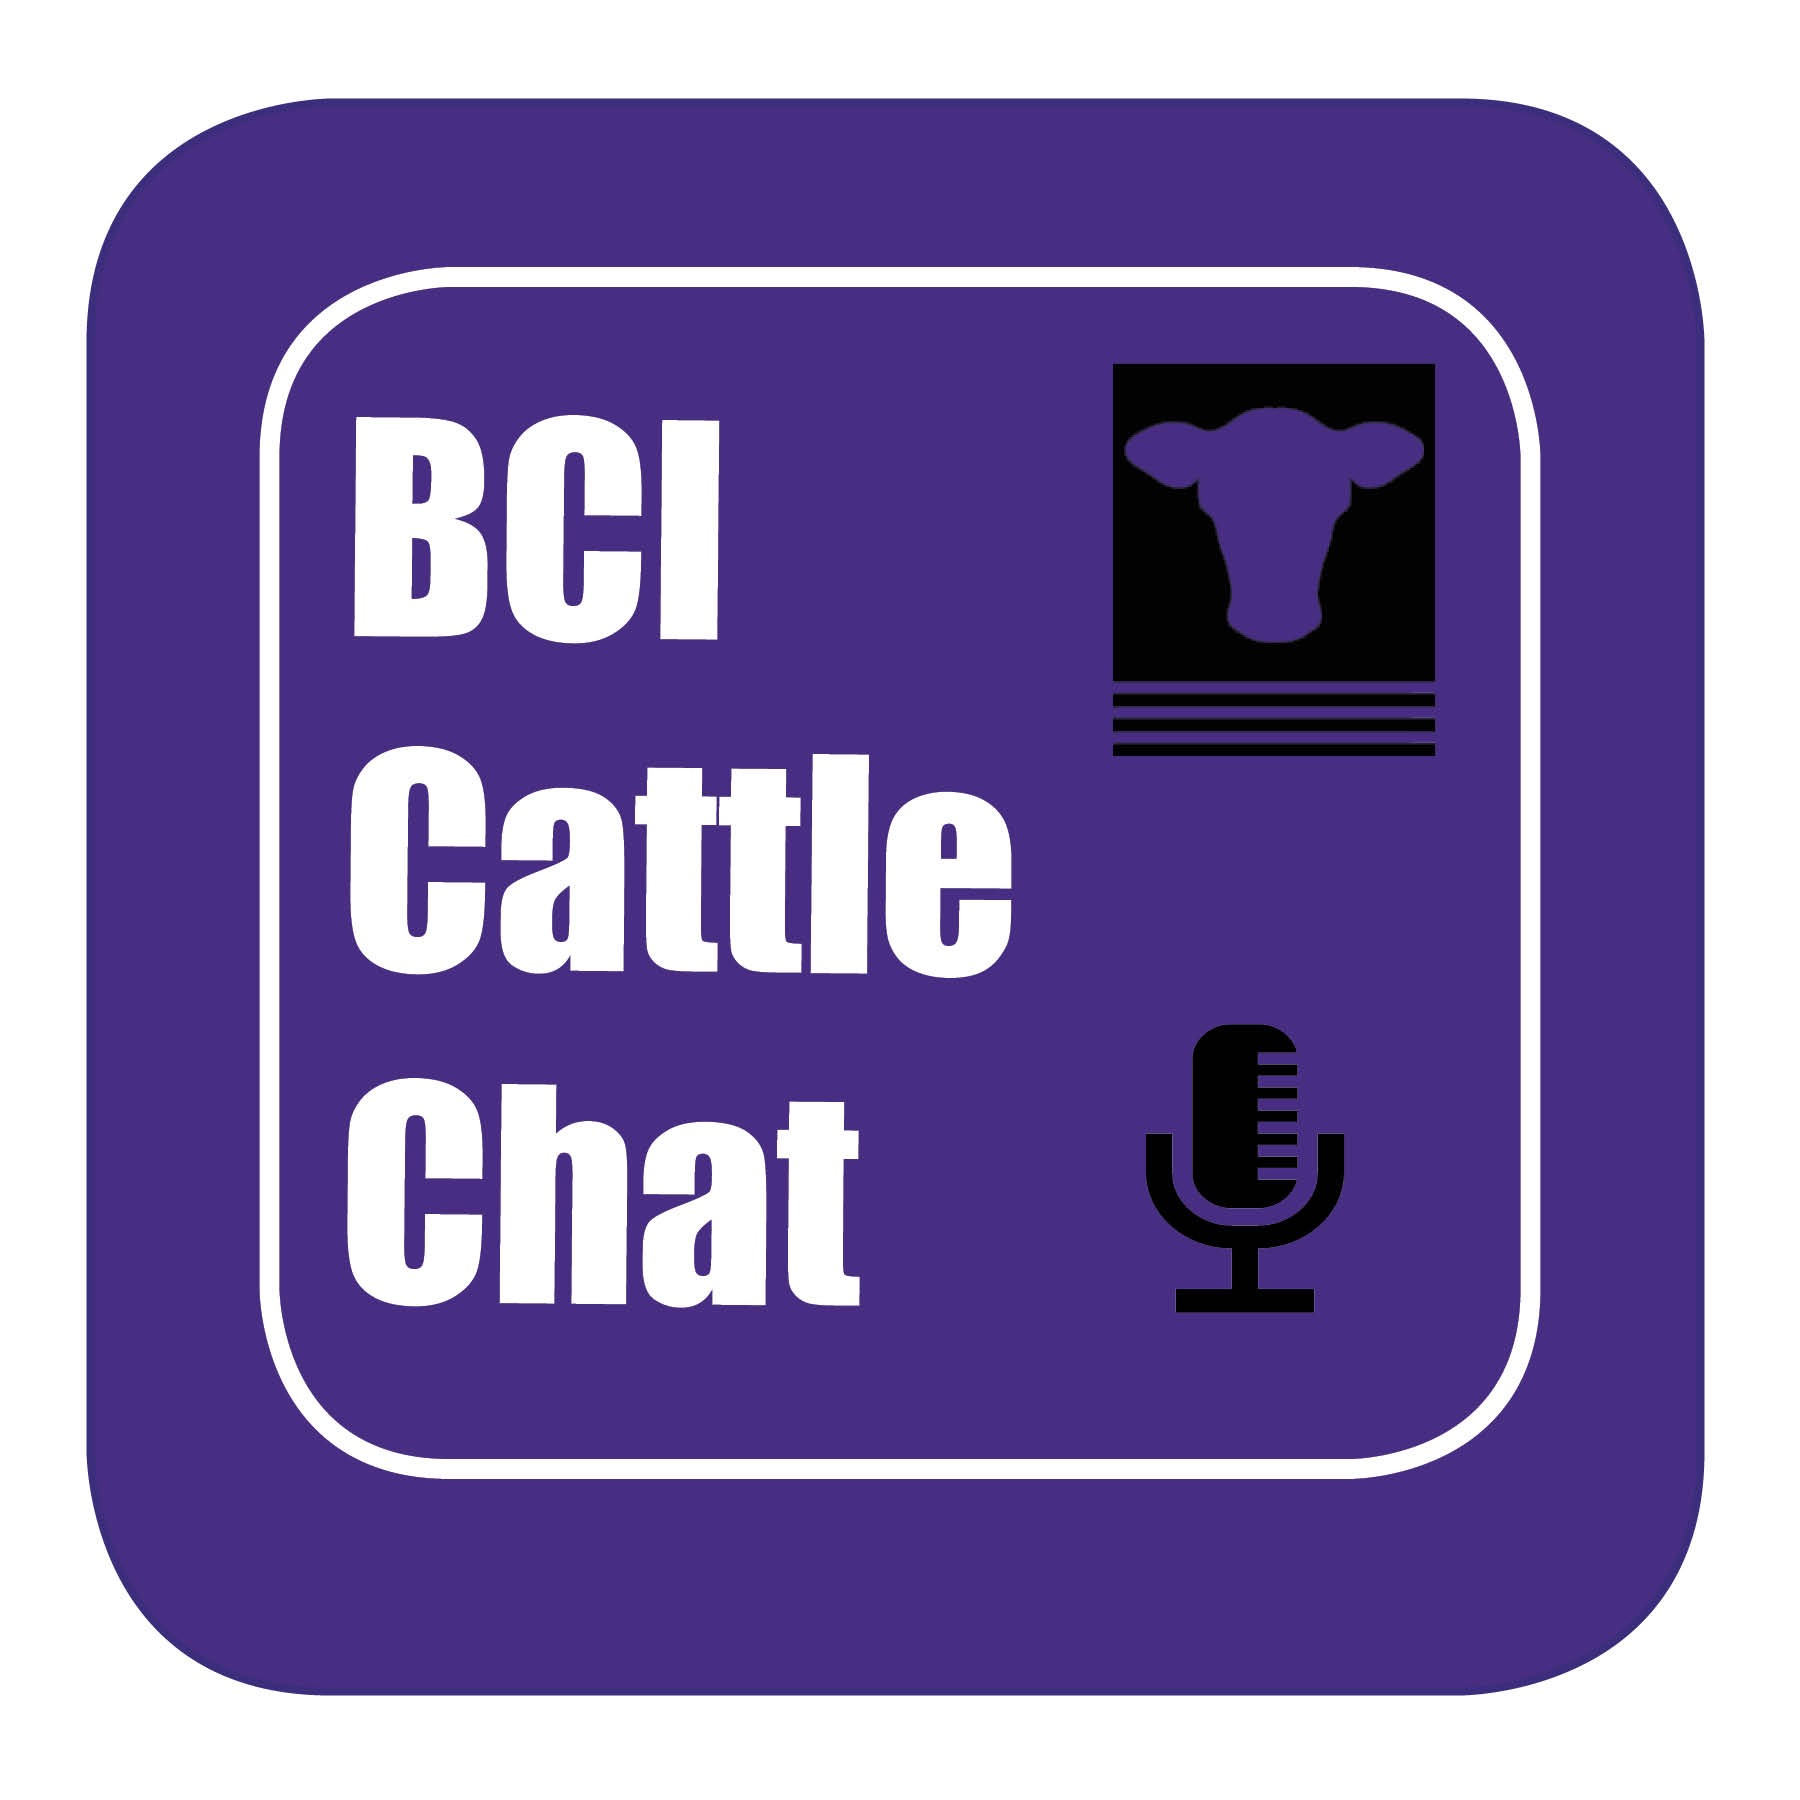 BCI Cattle Chat - Episode 11